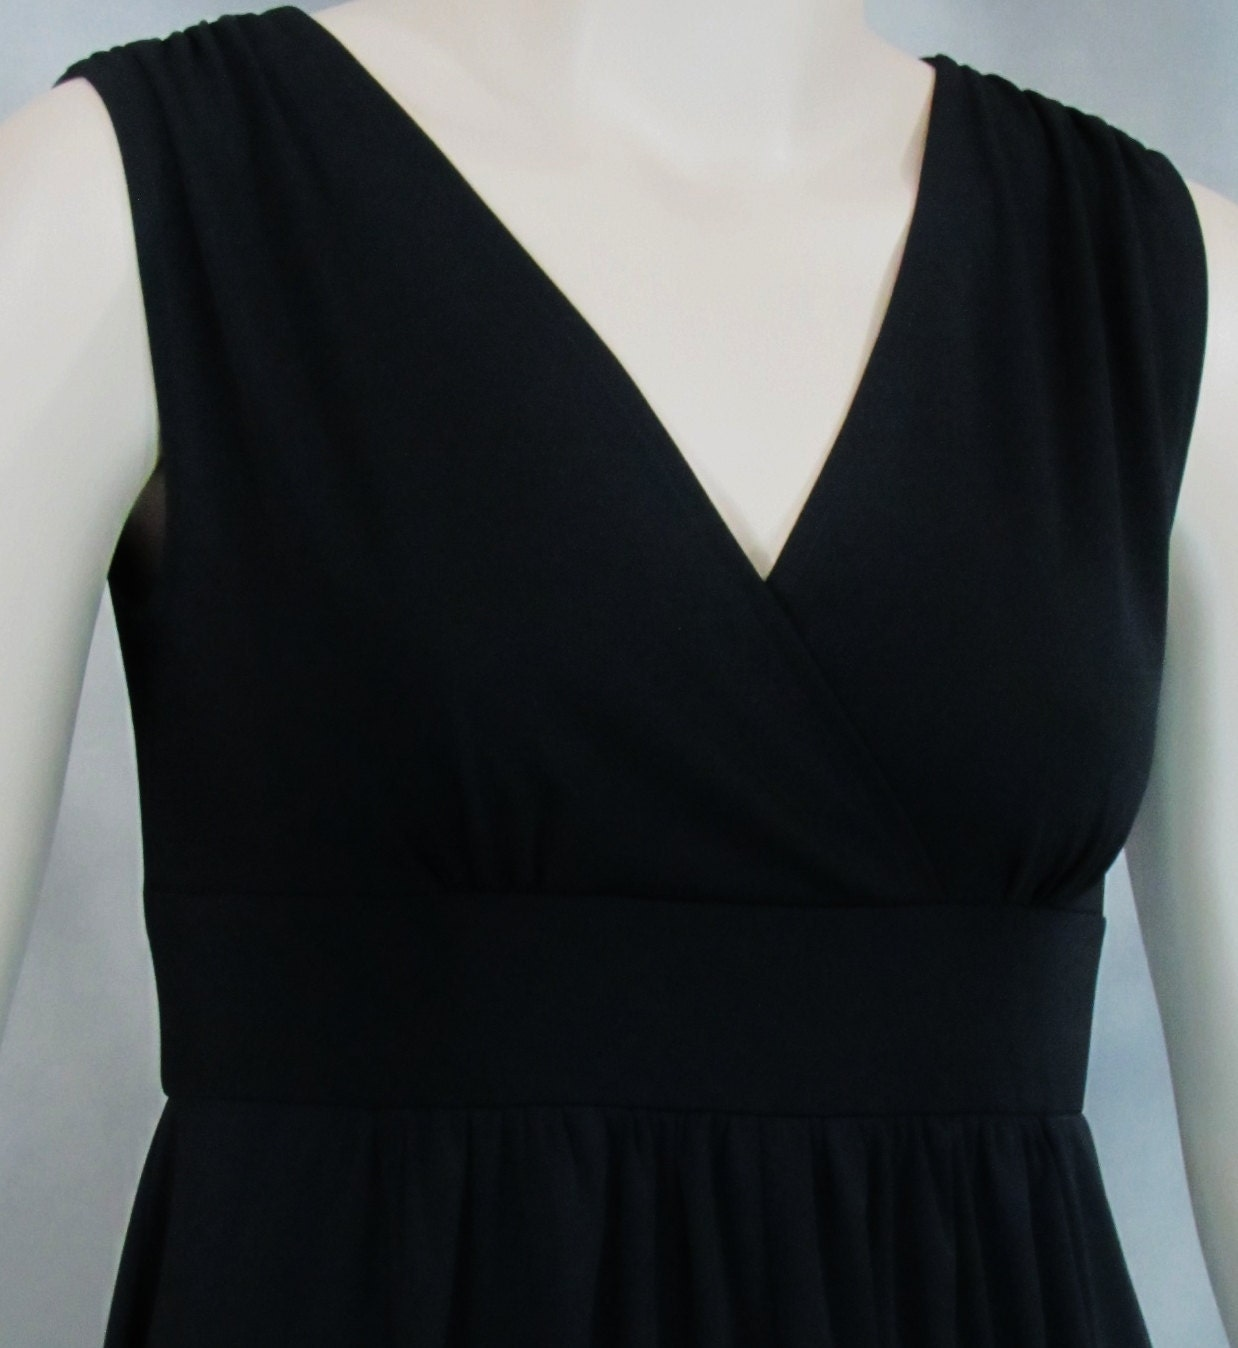 Empire Waist Shirred Cocktail Dress Knee Length Misses Plus Sizes 2-28 FREE Shipping USA Canada